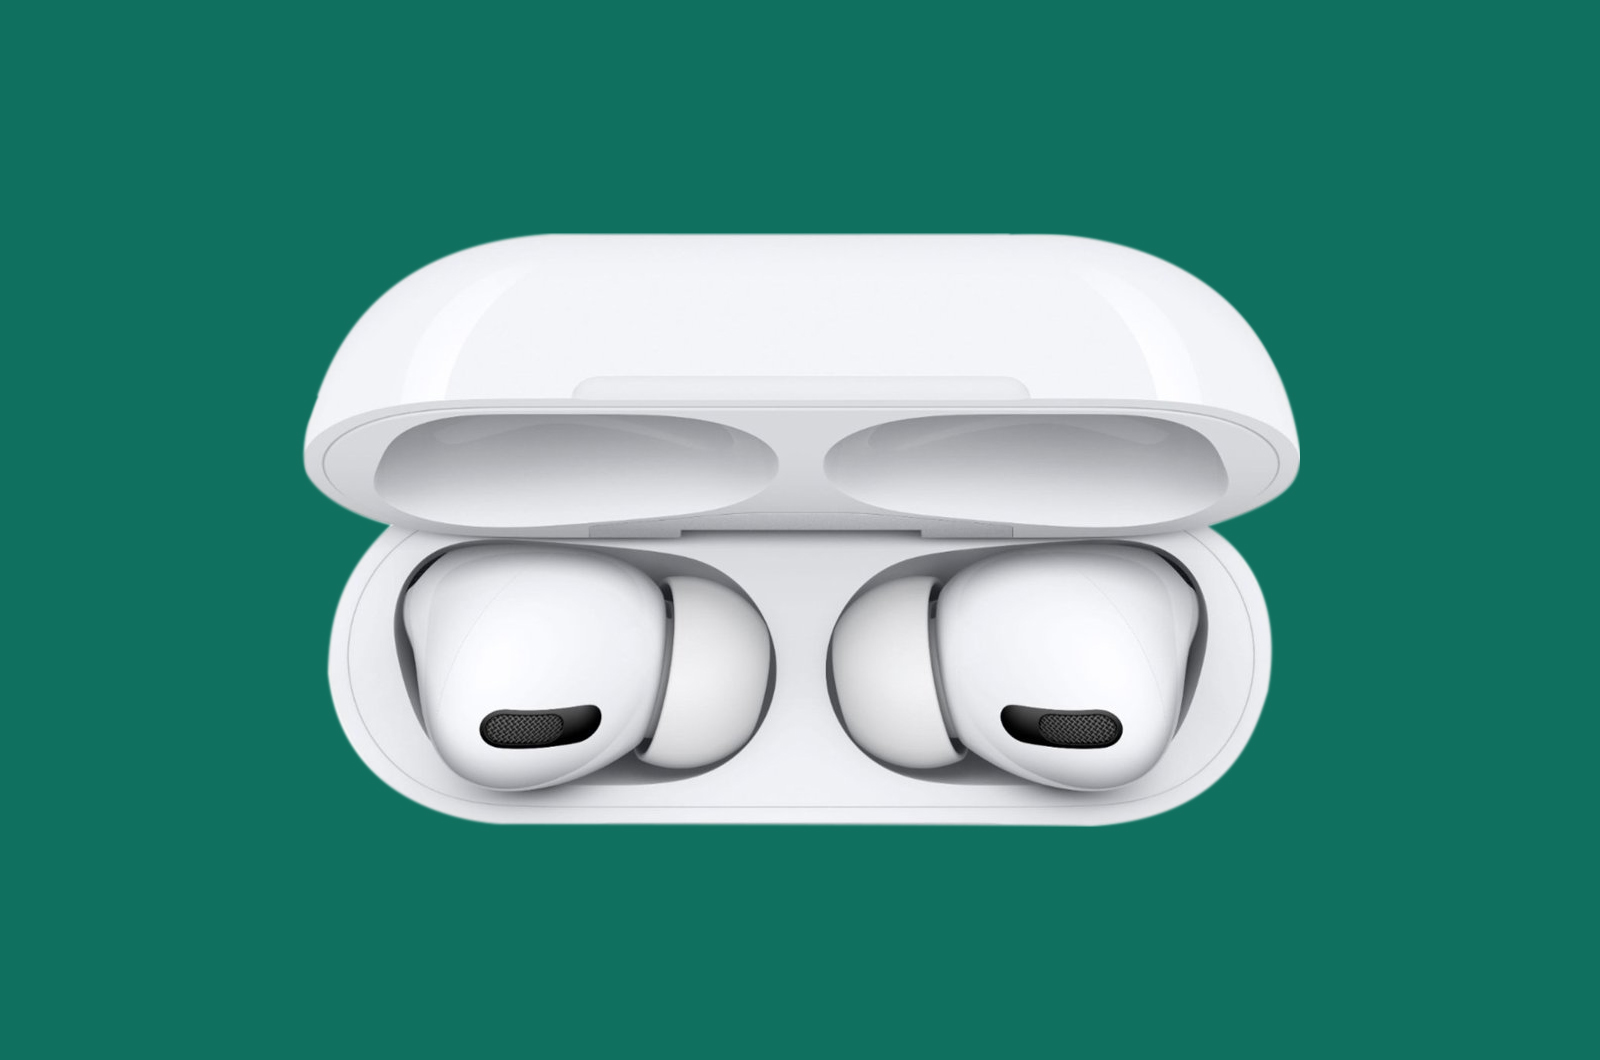 No Need to Wait Until Black Friday: AirPods Pros Are on Sale for $200